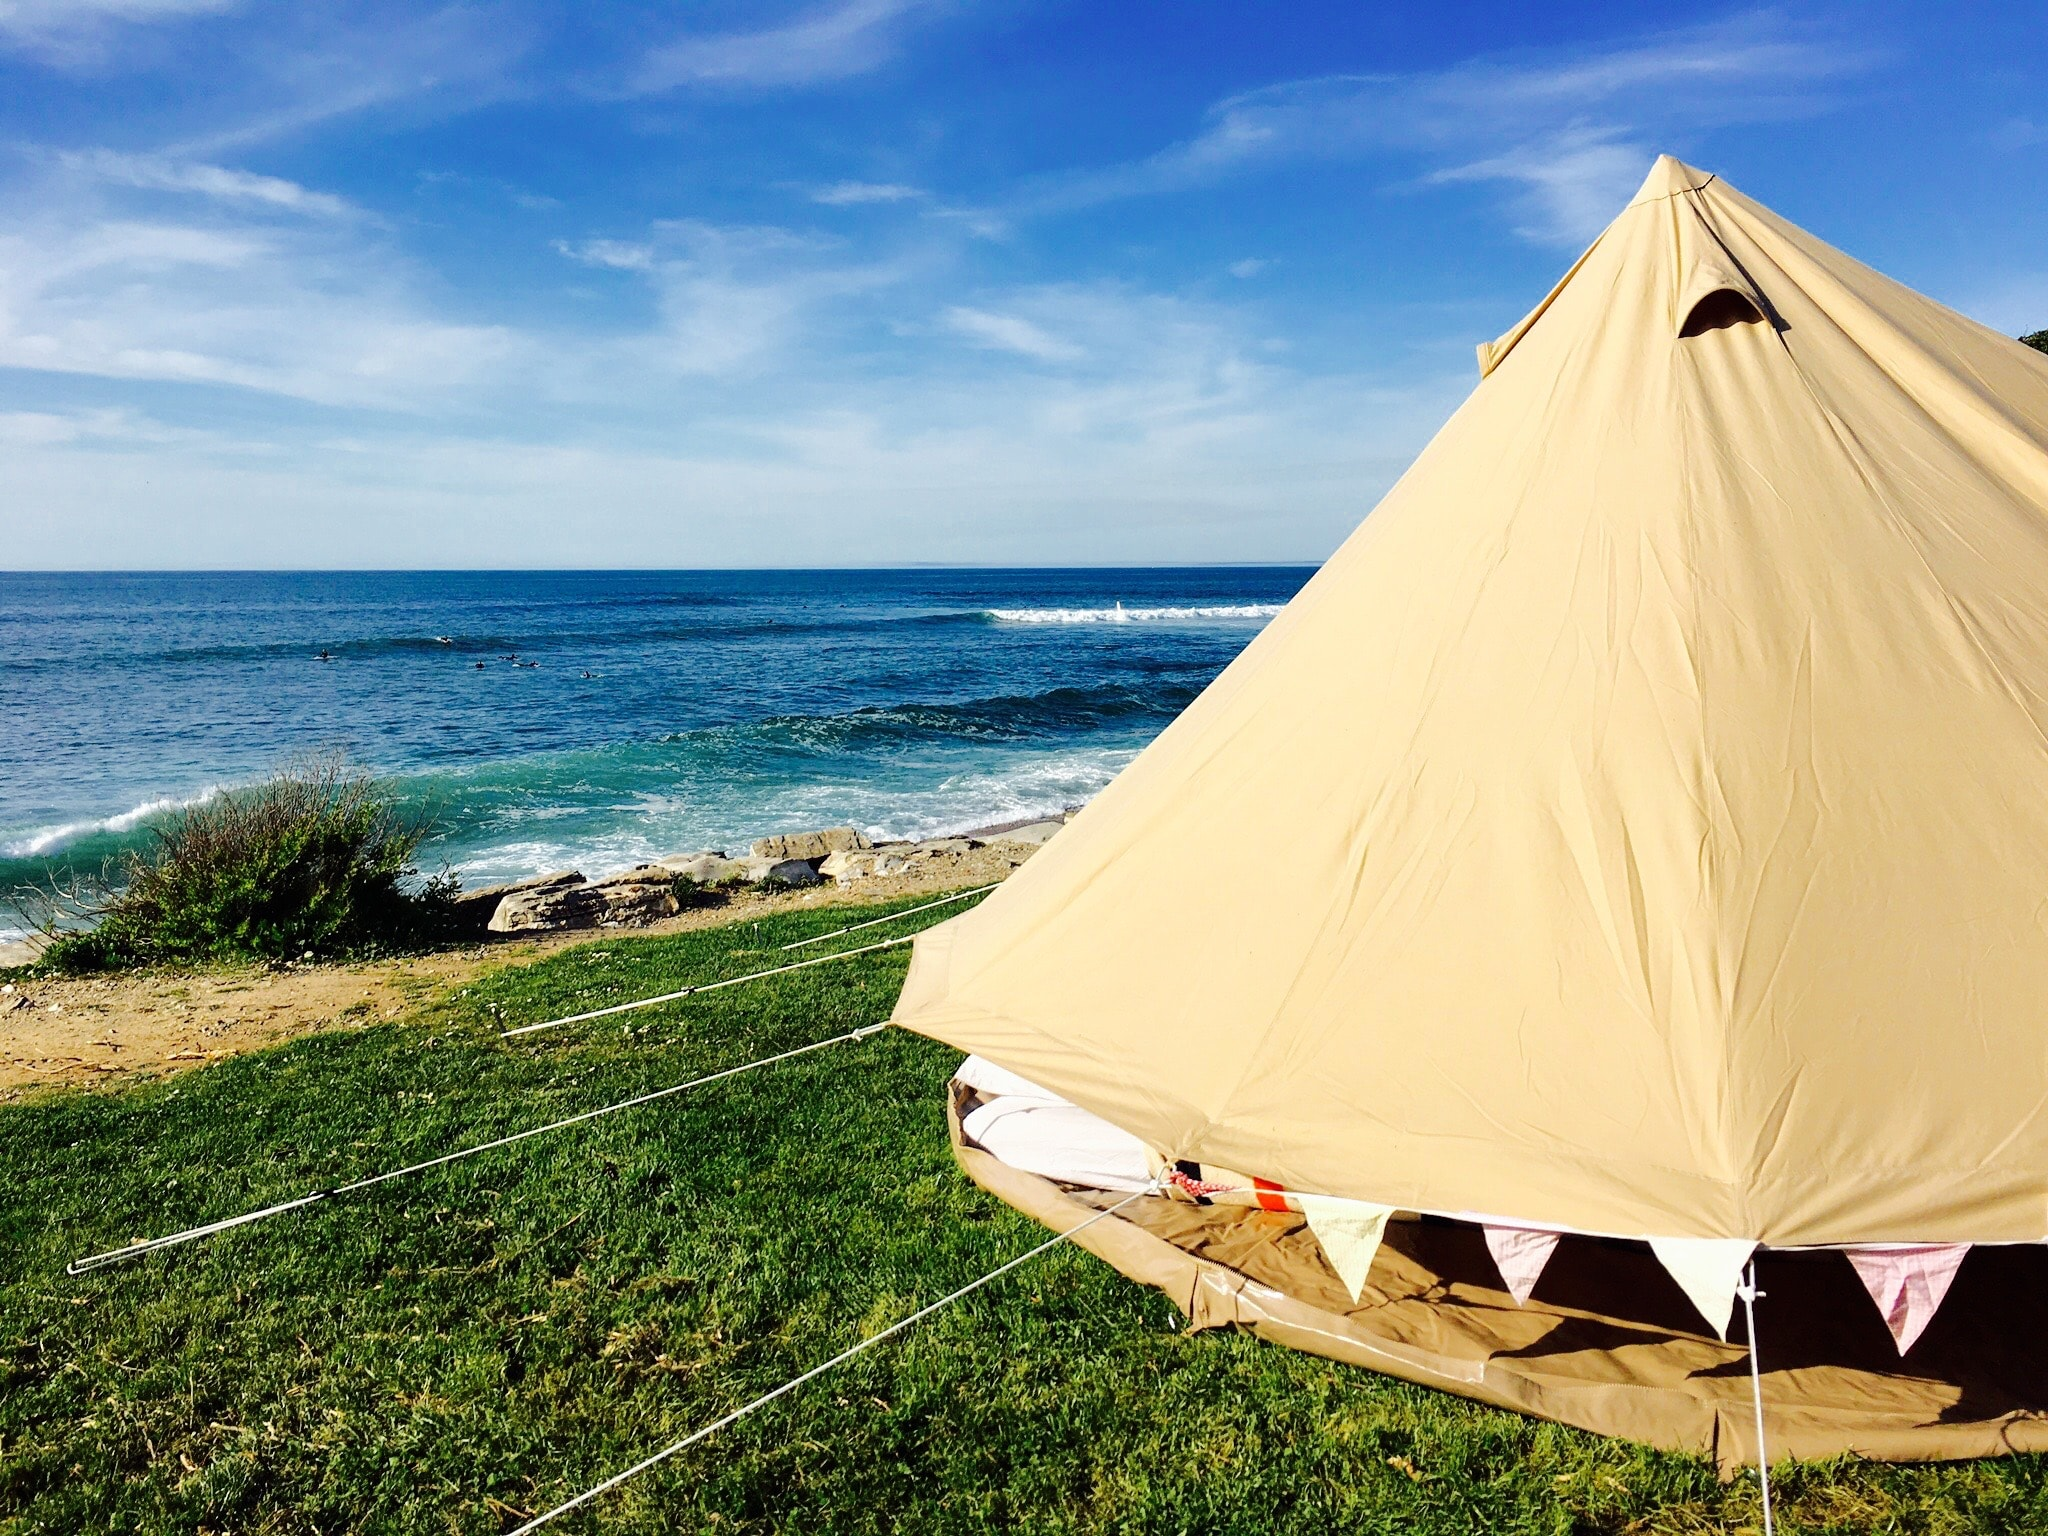 At Snazzy Camp, we want to open up the world of camping.. - ..without you needing to pitch a tent